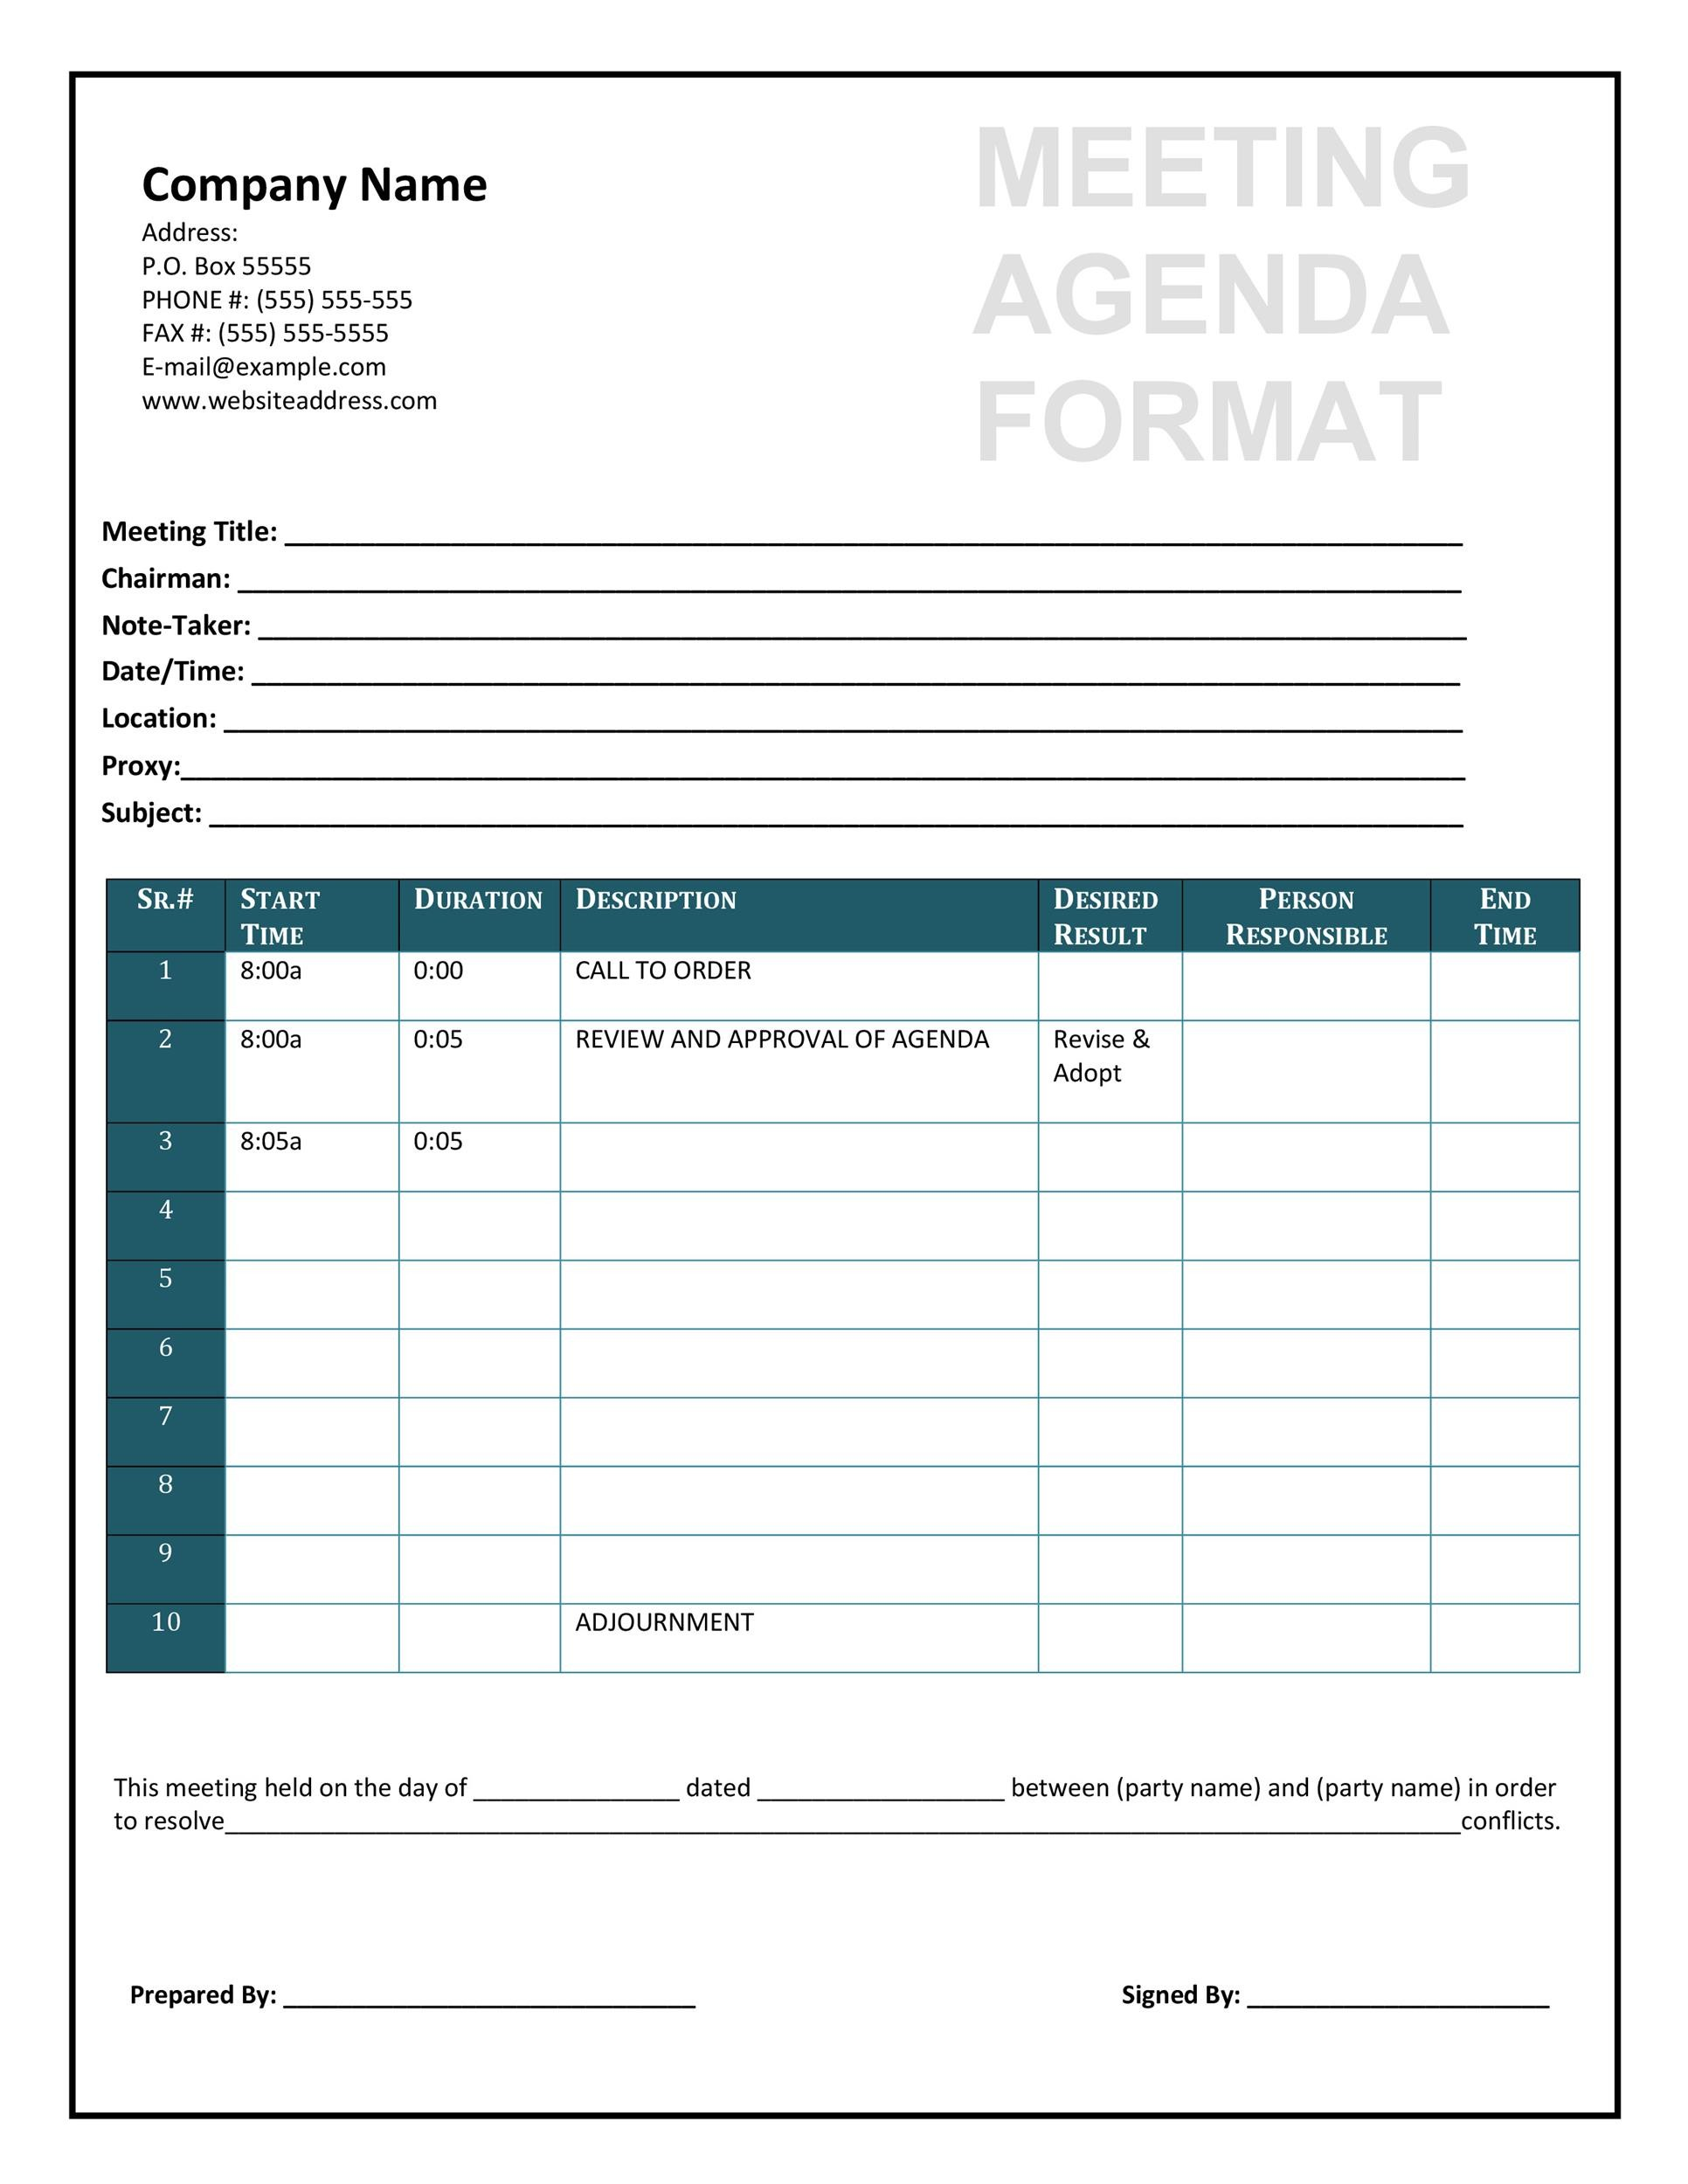 46 Effective Meeting Agenda Templates Template Lab – Agenda Examples for Meetings